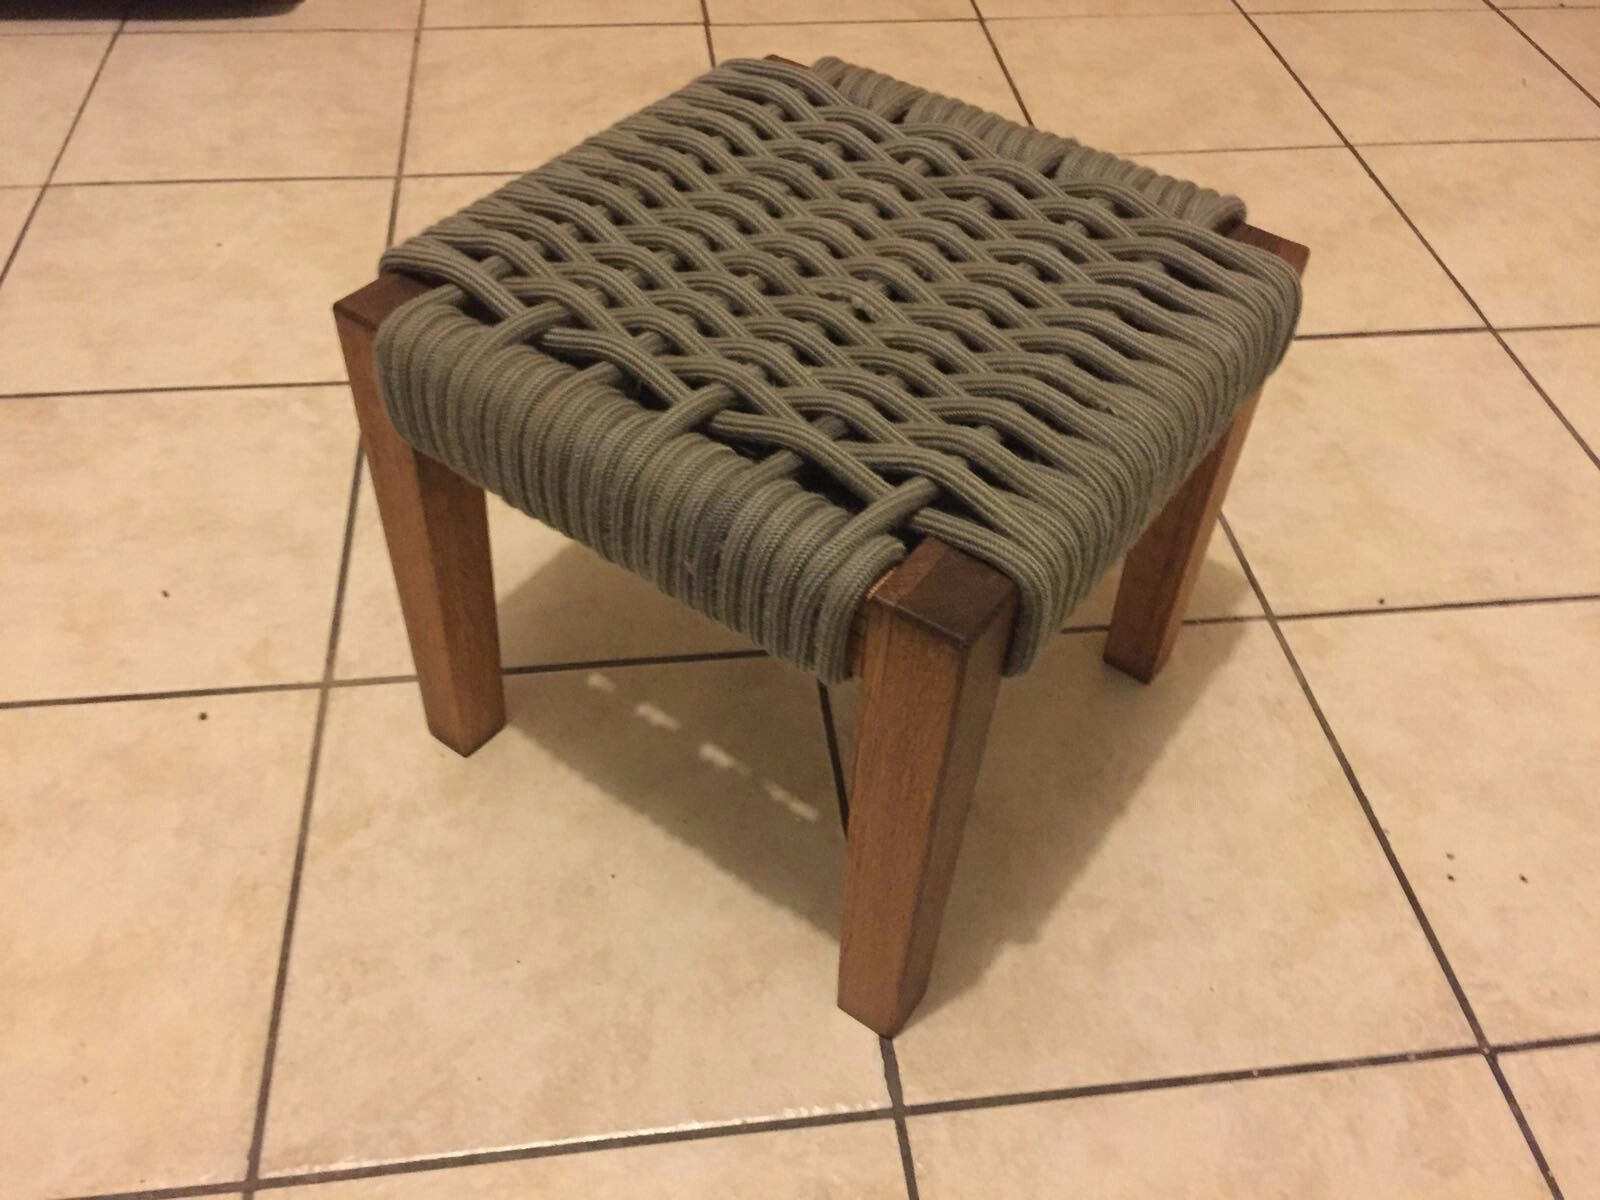 oiled reused oak framed stool using old climbing rope woven for